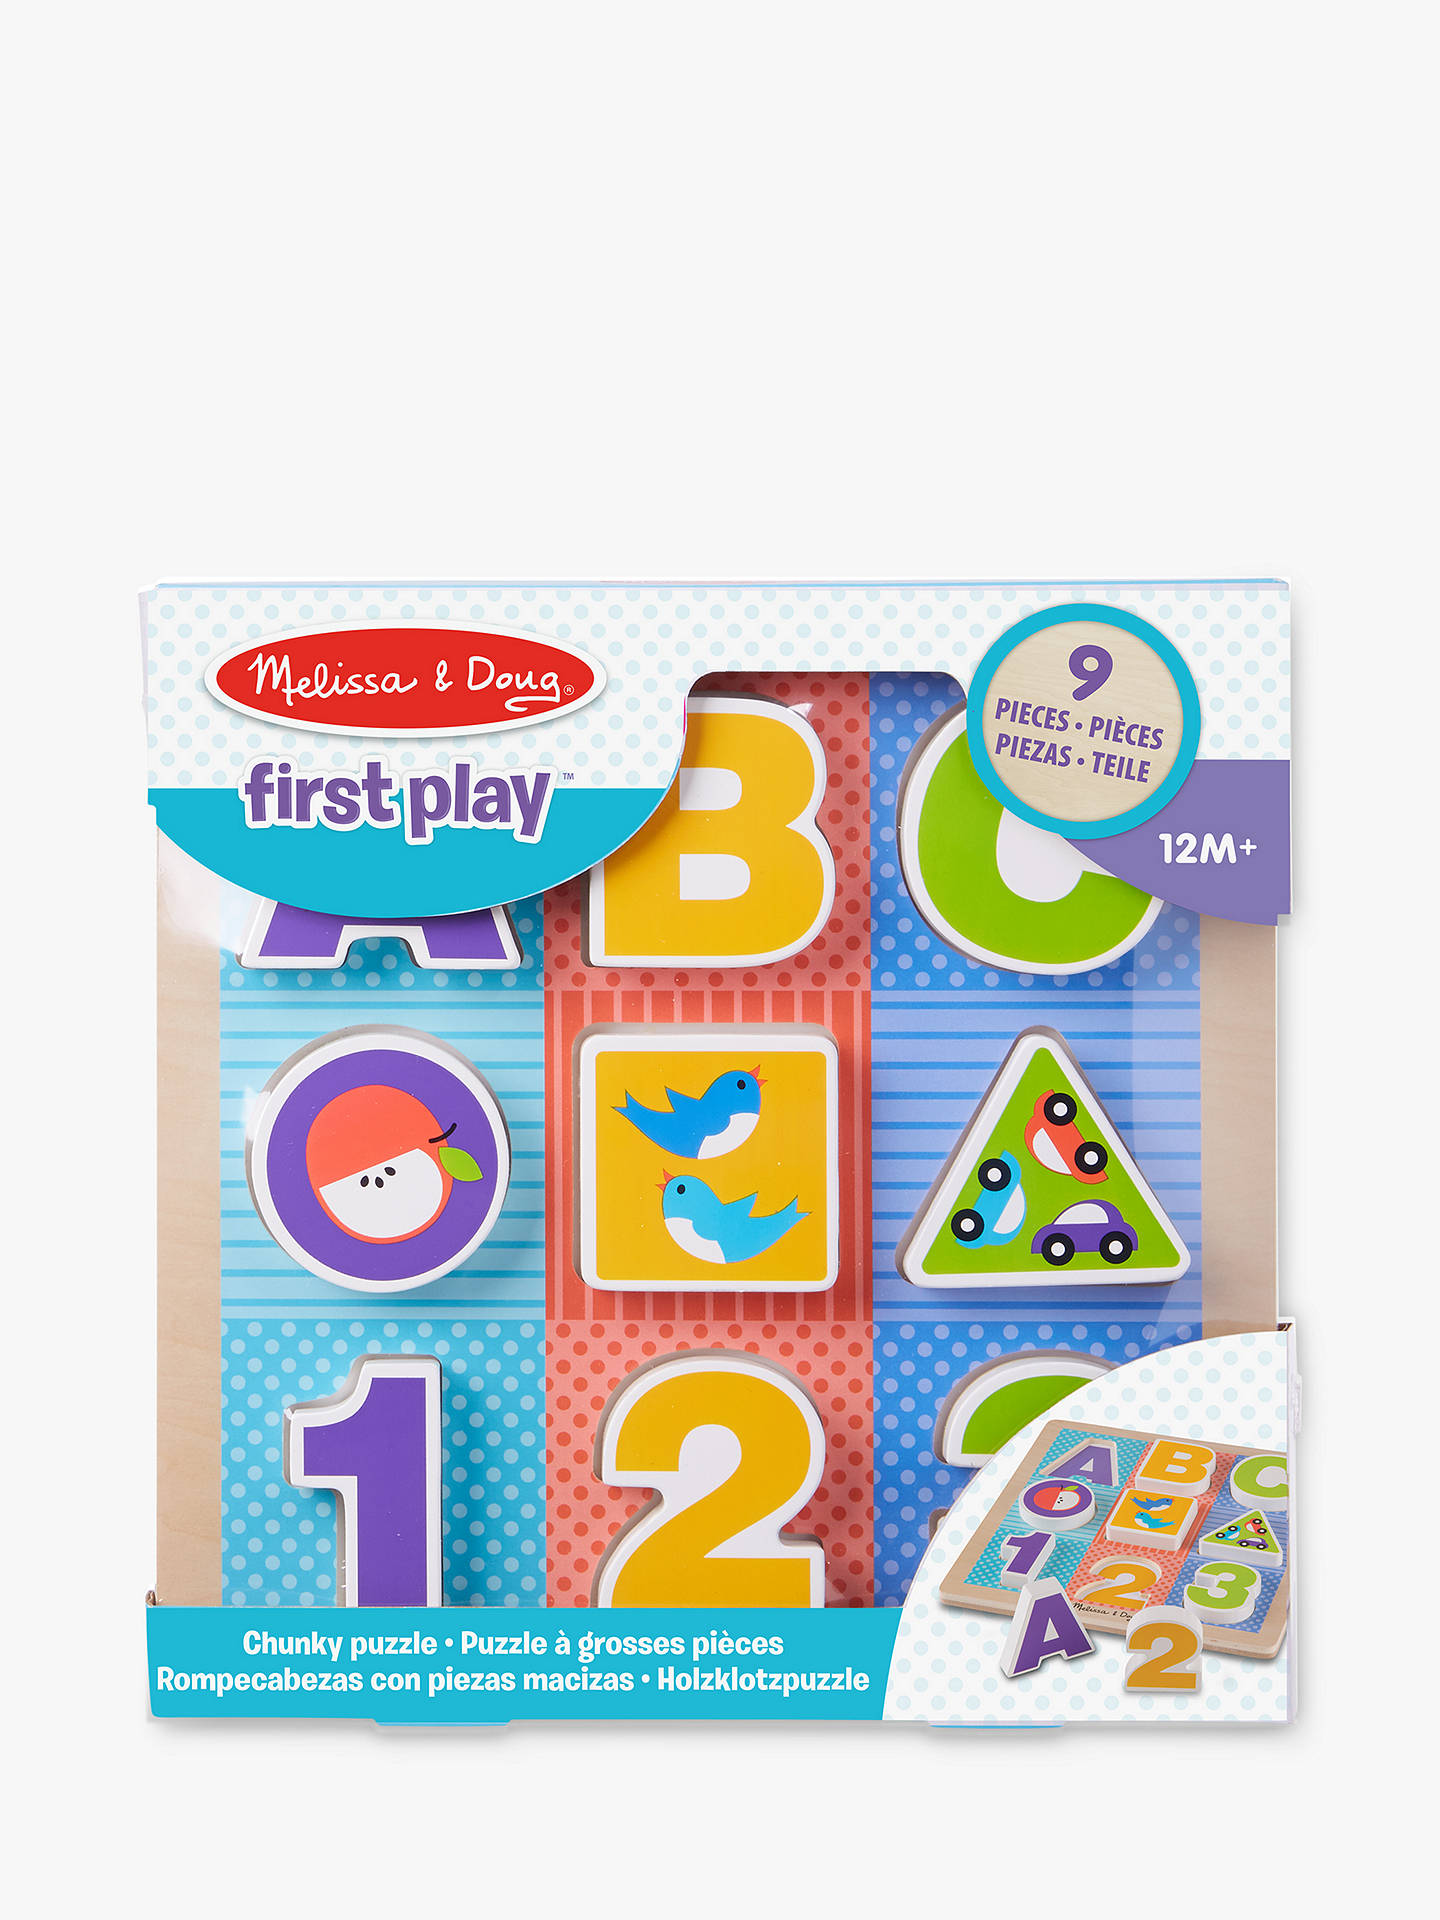 Melissa Doug First Play Wooden Abc 123 Chunky Puzzle